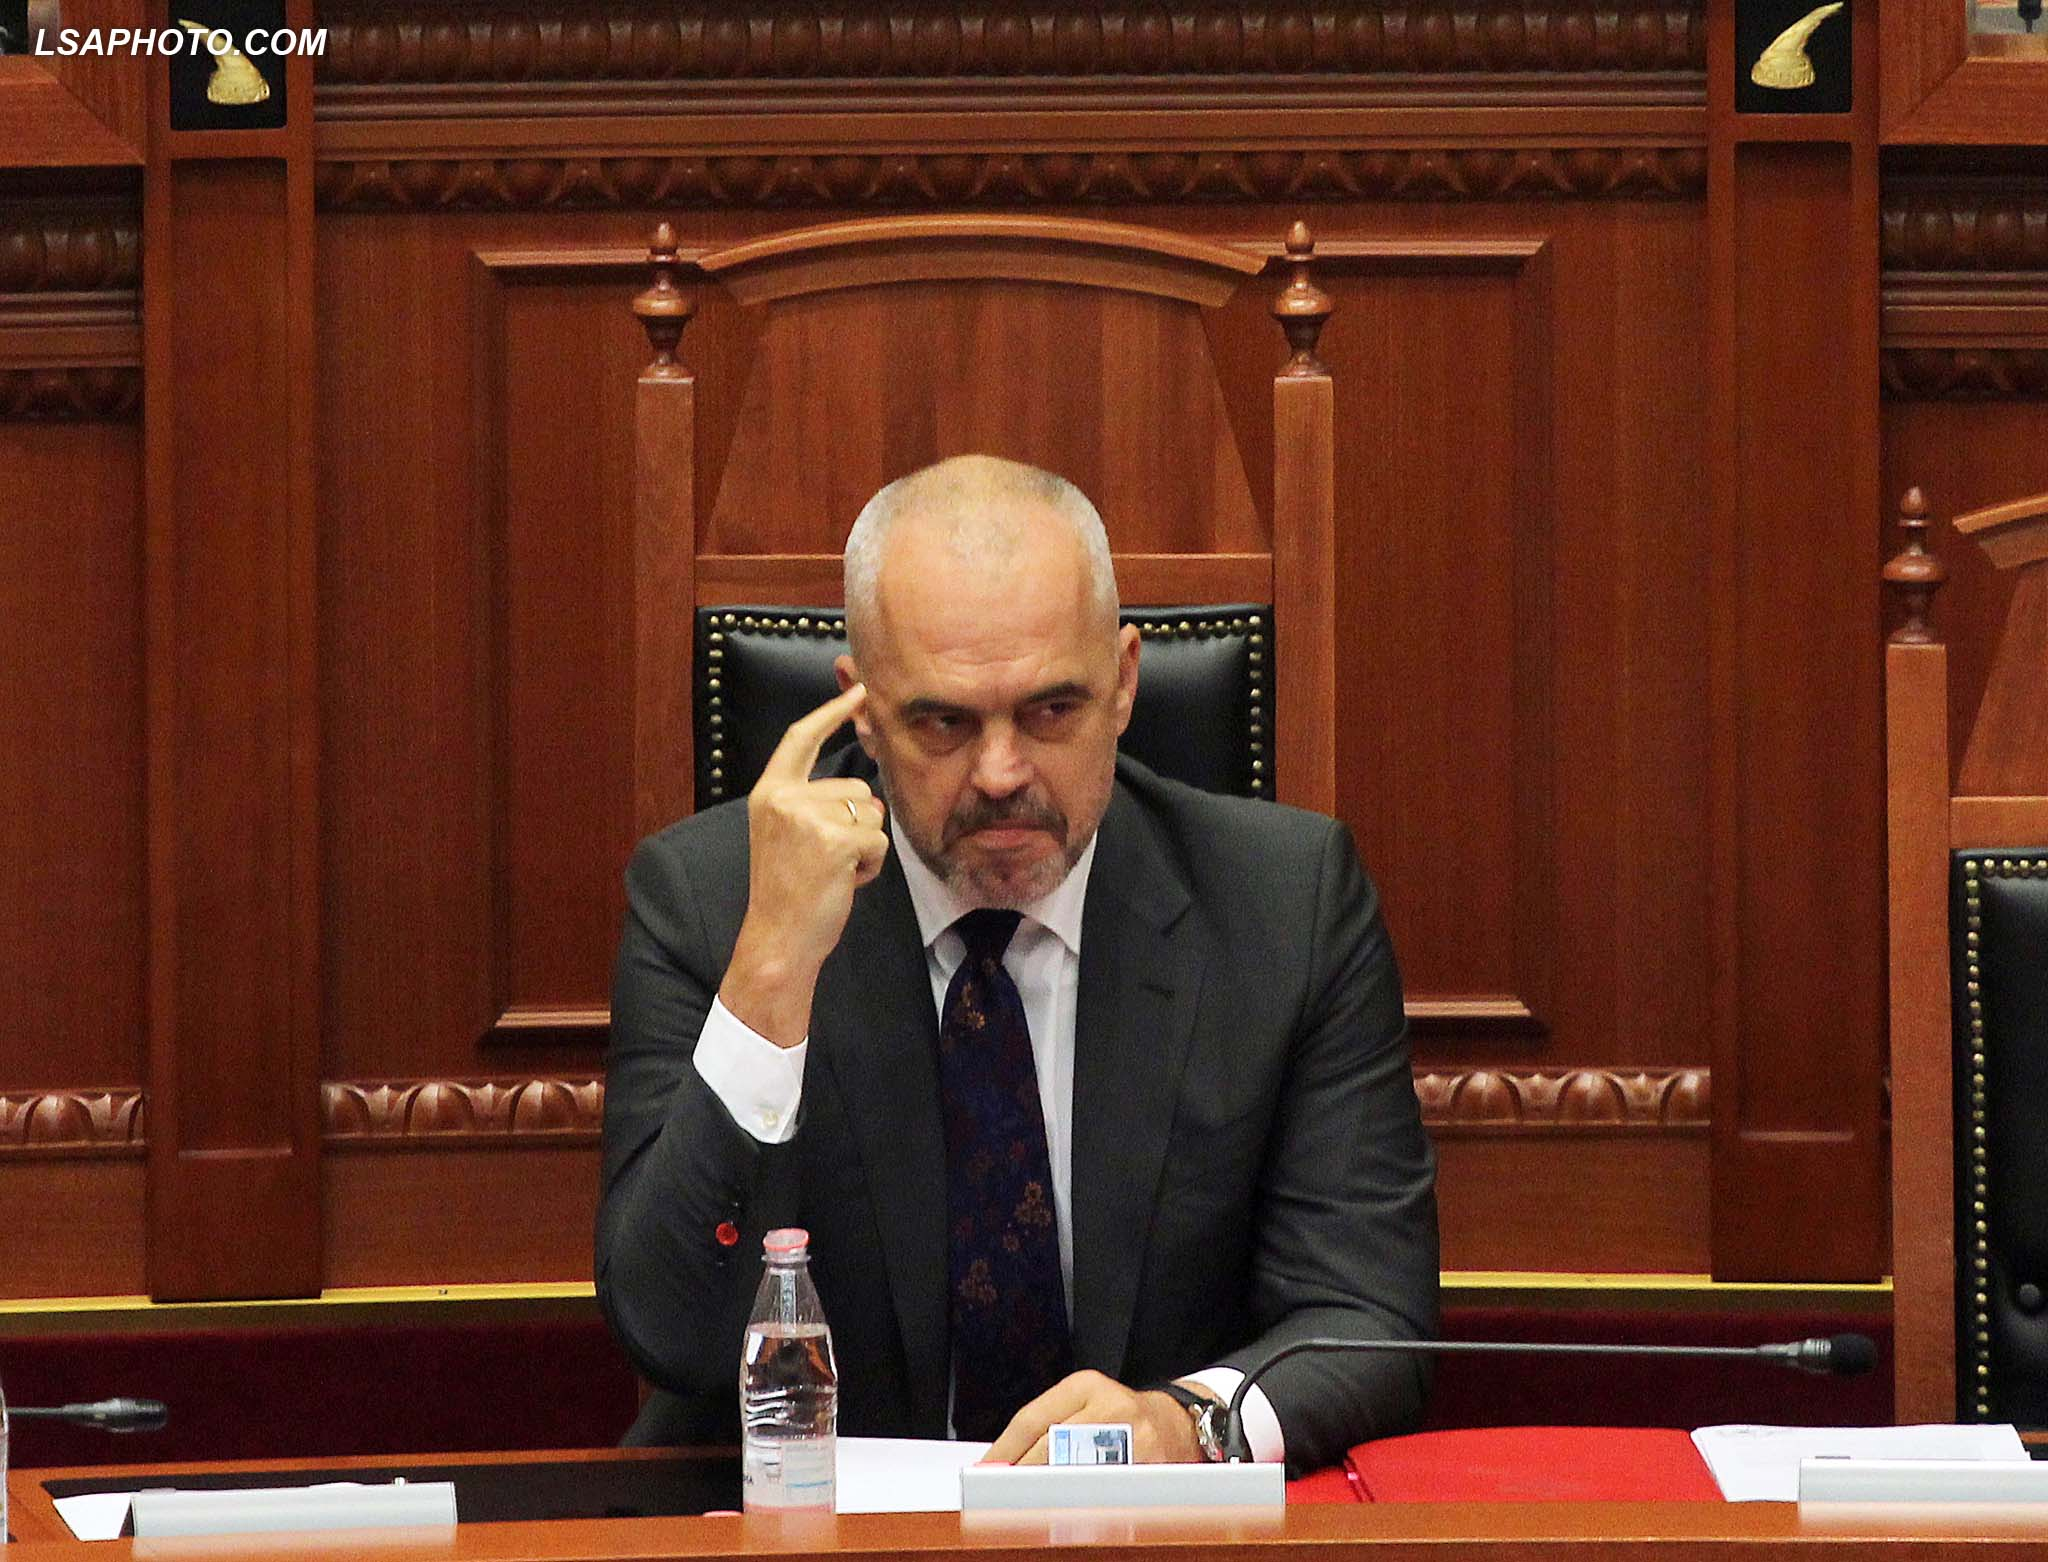 SEANCE PARLAMENTARE - Kryeministri Edi Rama, gjate nje seance parlamentare, ku u debatua ne lidhje me gjendjen e varferise dhe zhvillimet ekonomike ne vend./r/n/r/nPARLIAMENTARY SESSION - Prime Minister Edi Rama, during a parliamentary session, where was debated in relation to the situation of poverty and economic developments in the country.